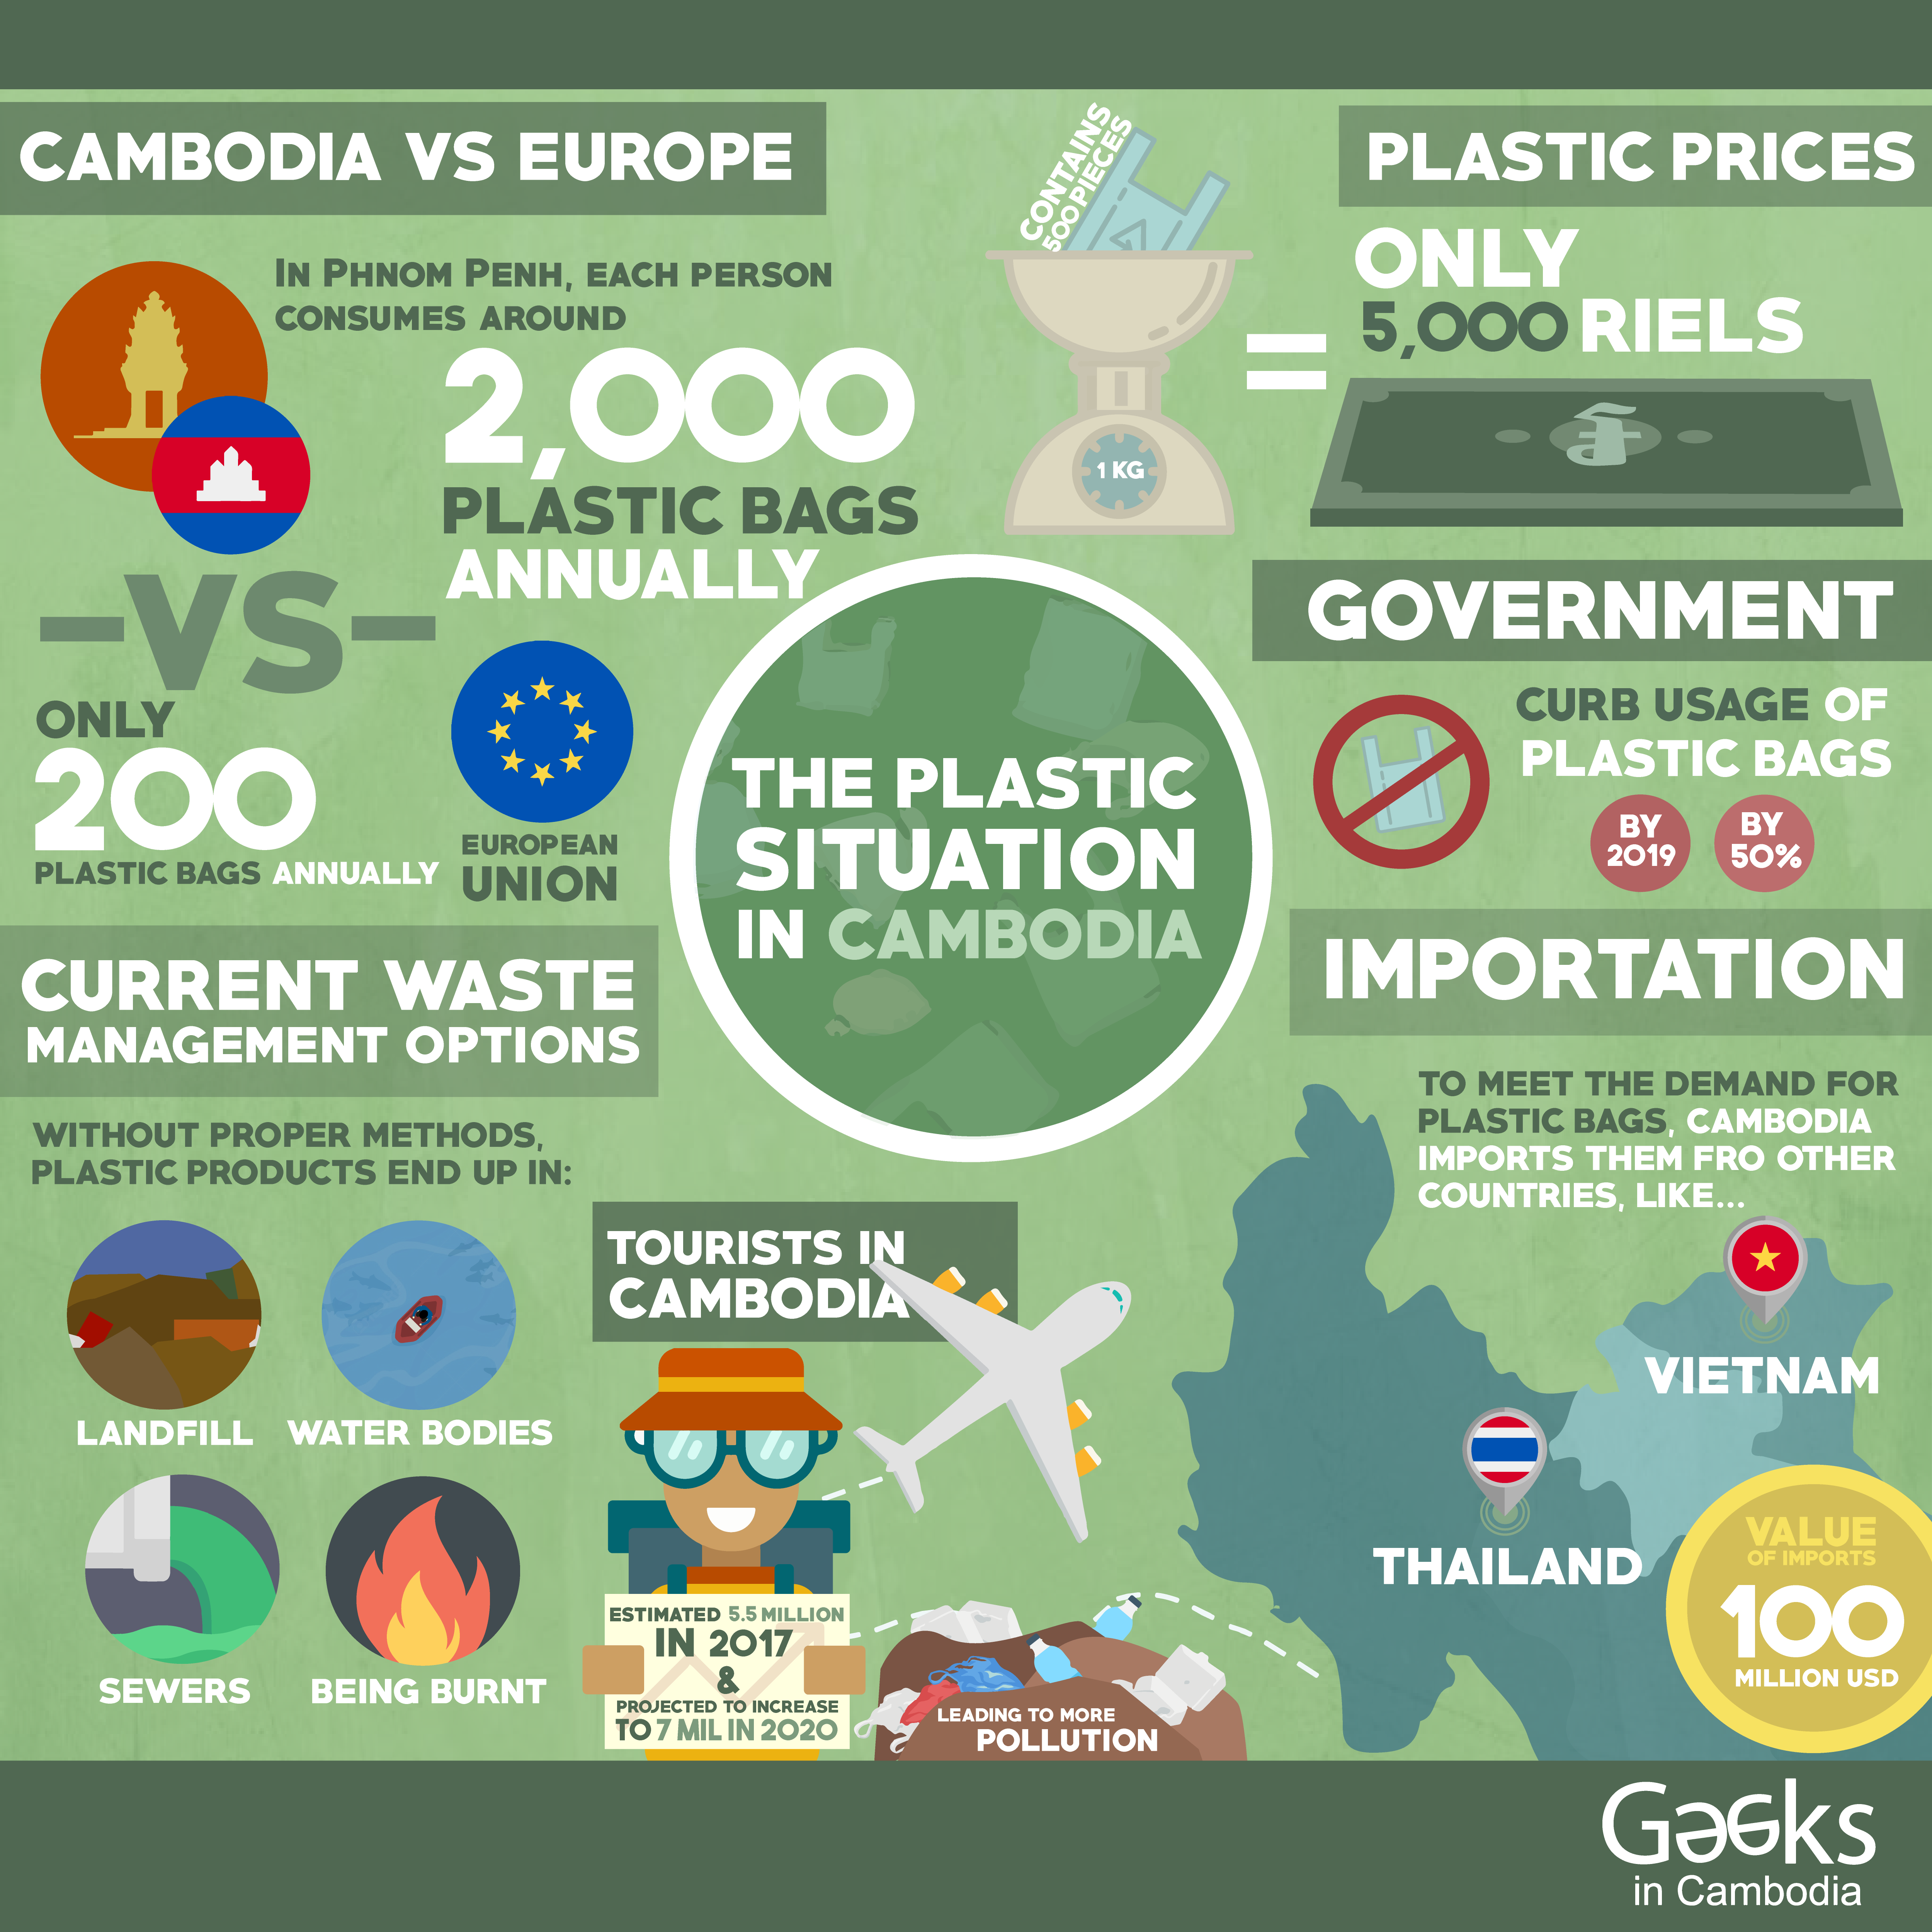 Infographic on Statistics revolving around Plastic Usage in Cambodia Information Sources: Plastic Free Cambodia, DW Akademie